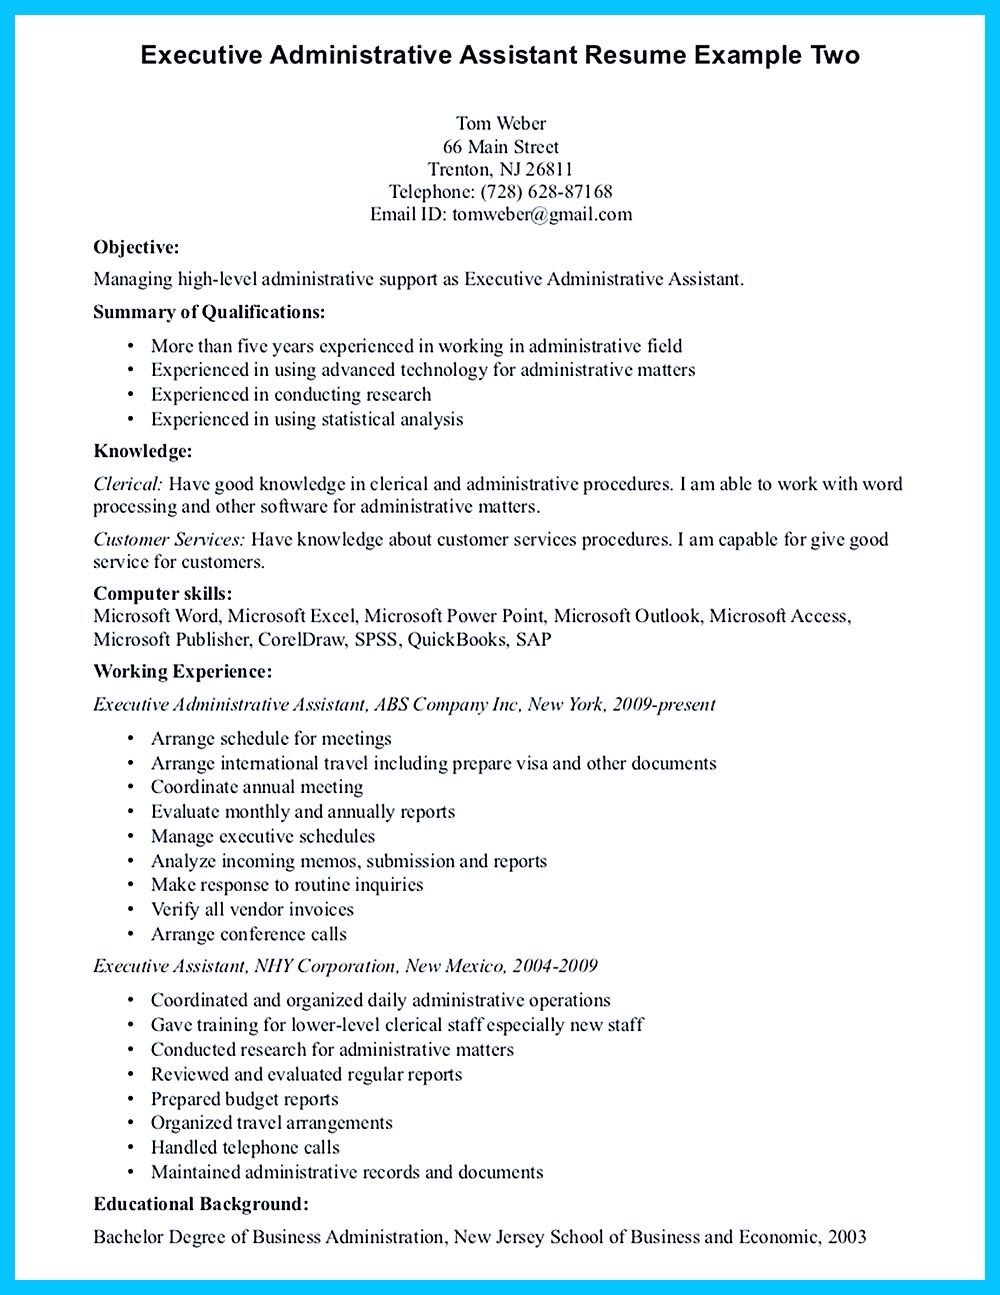 Brand Manager Resume In Writing Entry Level Administrative Assistant Resume You Need